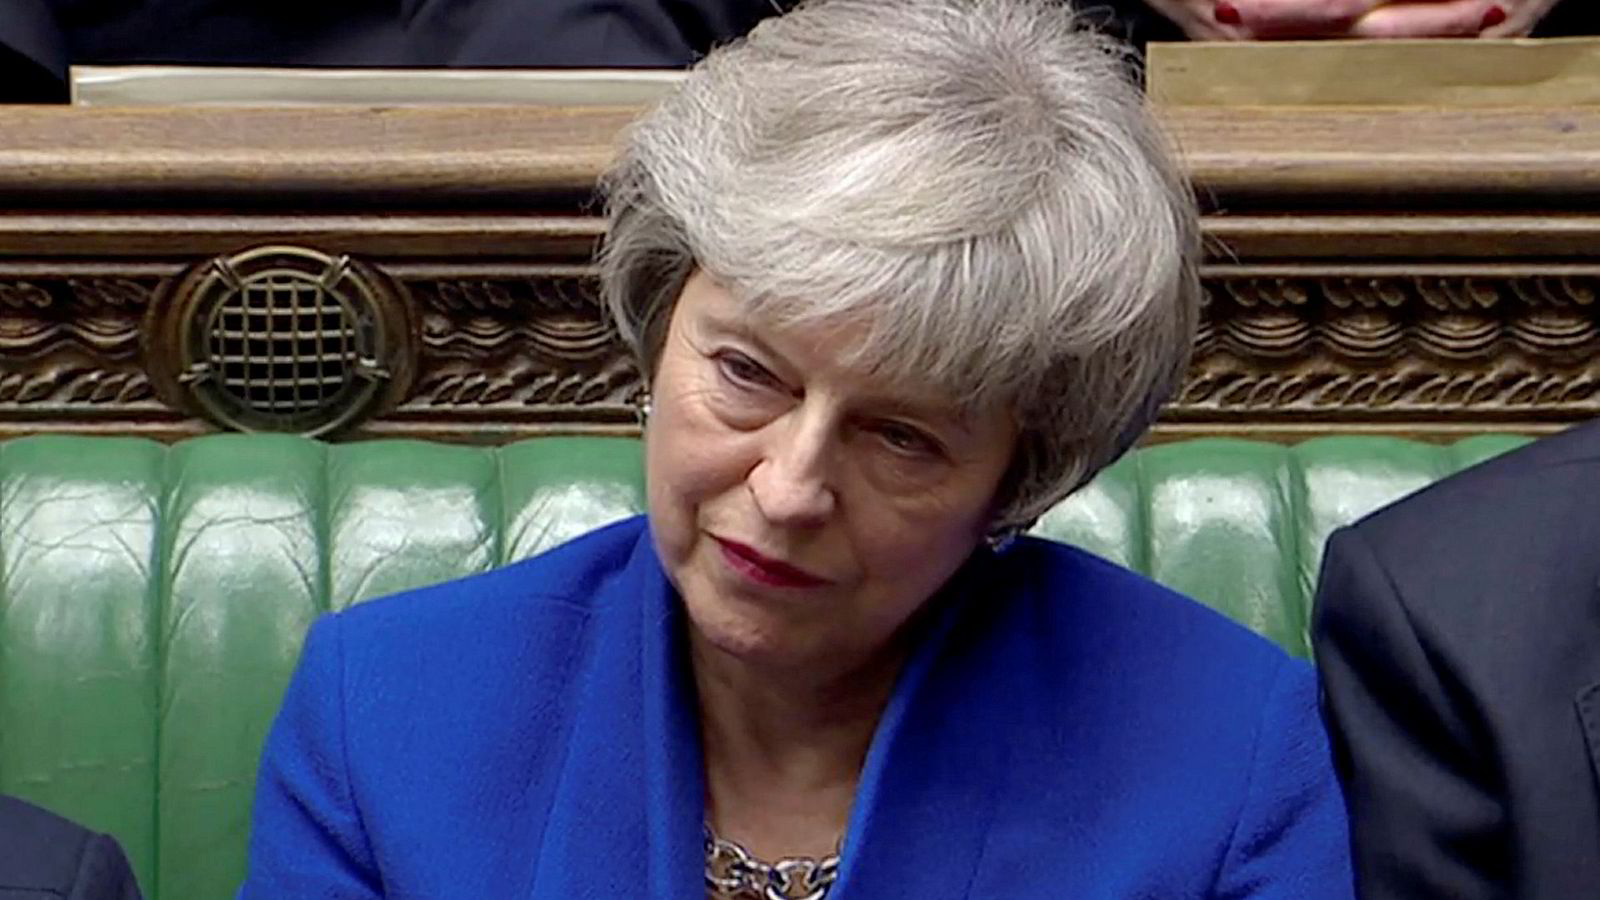 British Prime Minister Theresa May listens as Jeremy Corbyn speaks, after she won a confidence vote, after Parliament rejected her Brexit deal, in London, Britain, January 16, 2019, in this screen grab taken from video. Reuters TV via REUTERS